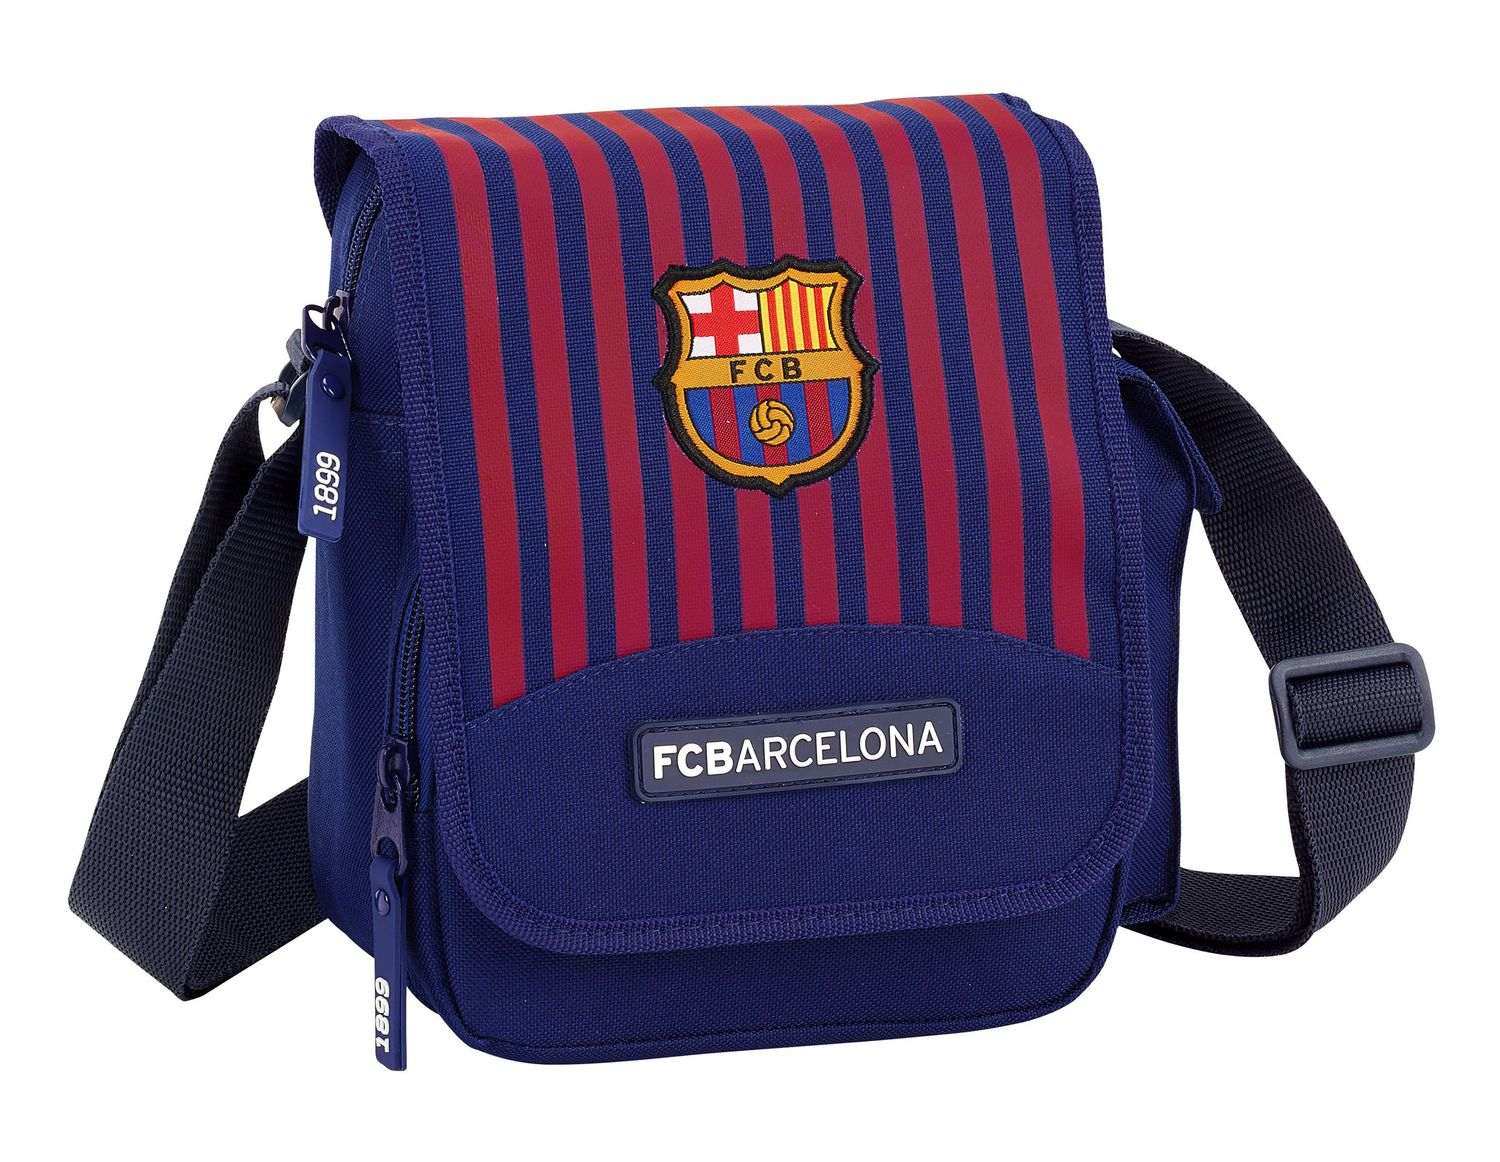 FC Barcelona 1st Kit 18/19 Shoulder Bag – image 1